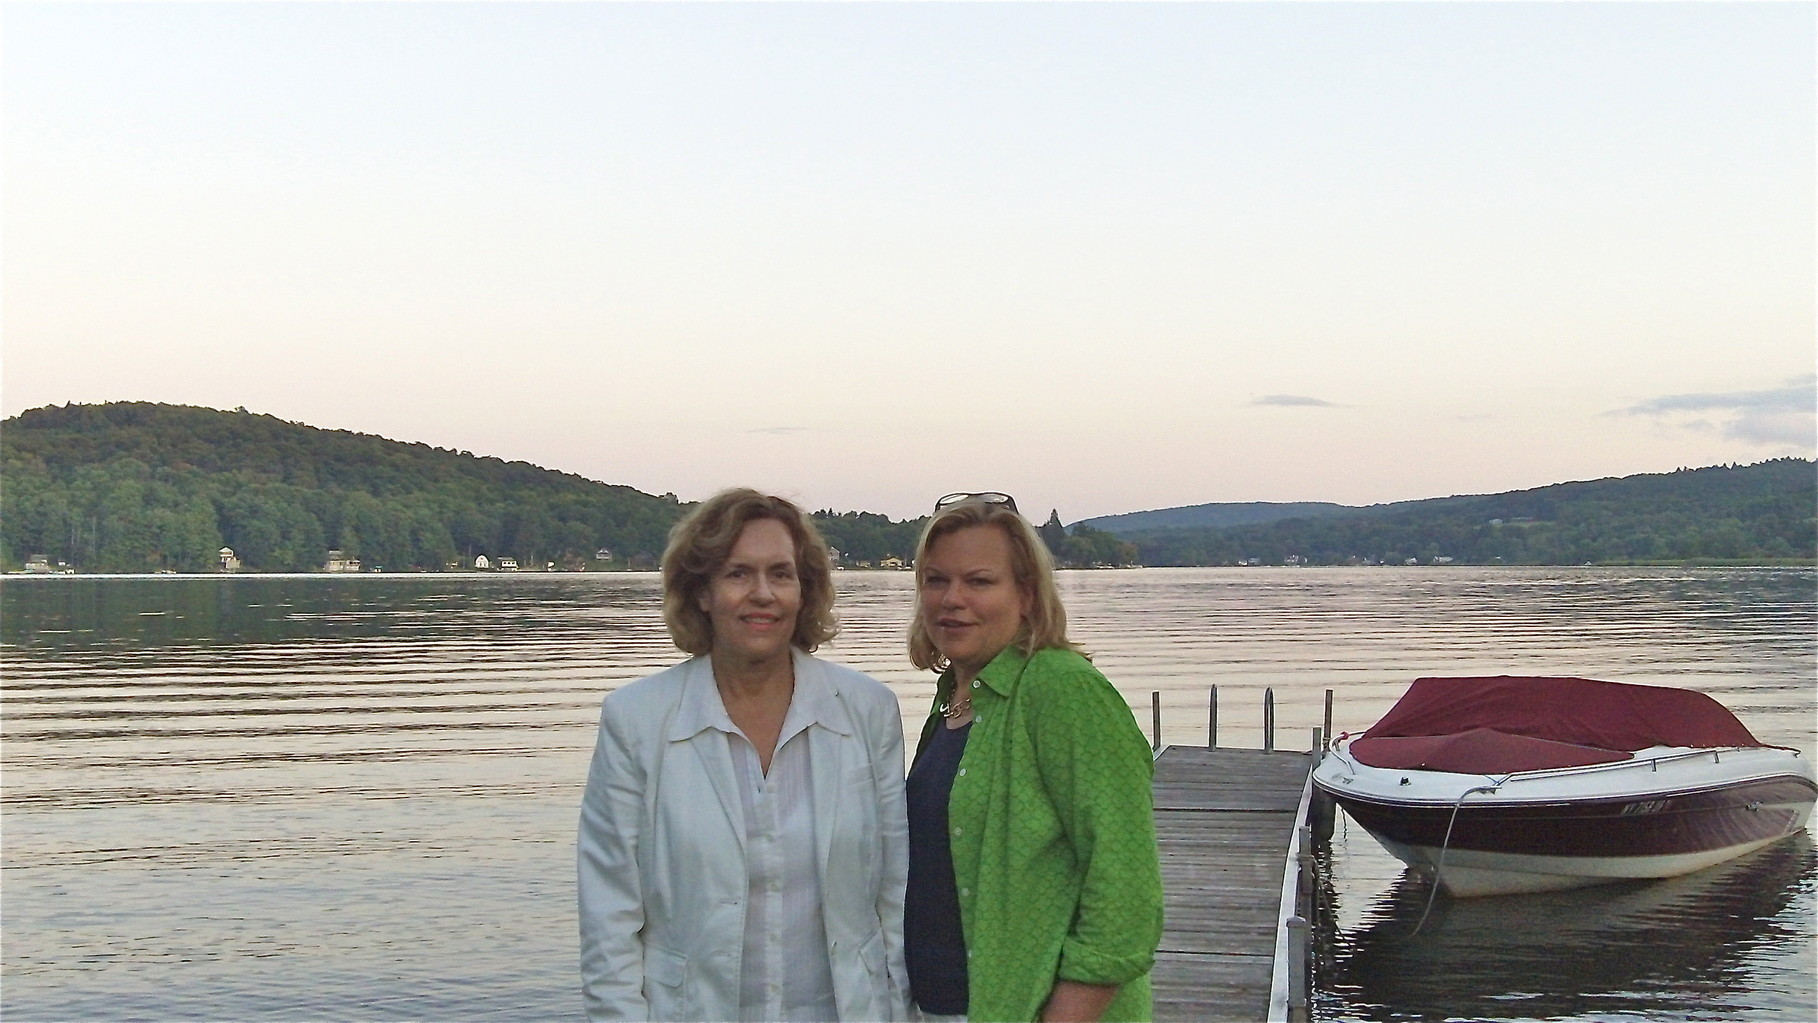 Lorraine & Celeste at Tuscarora Lake, Blue Canoe for dinner